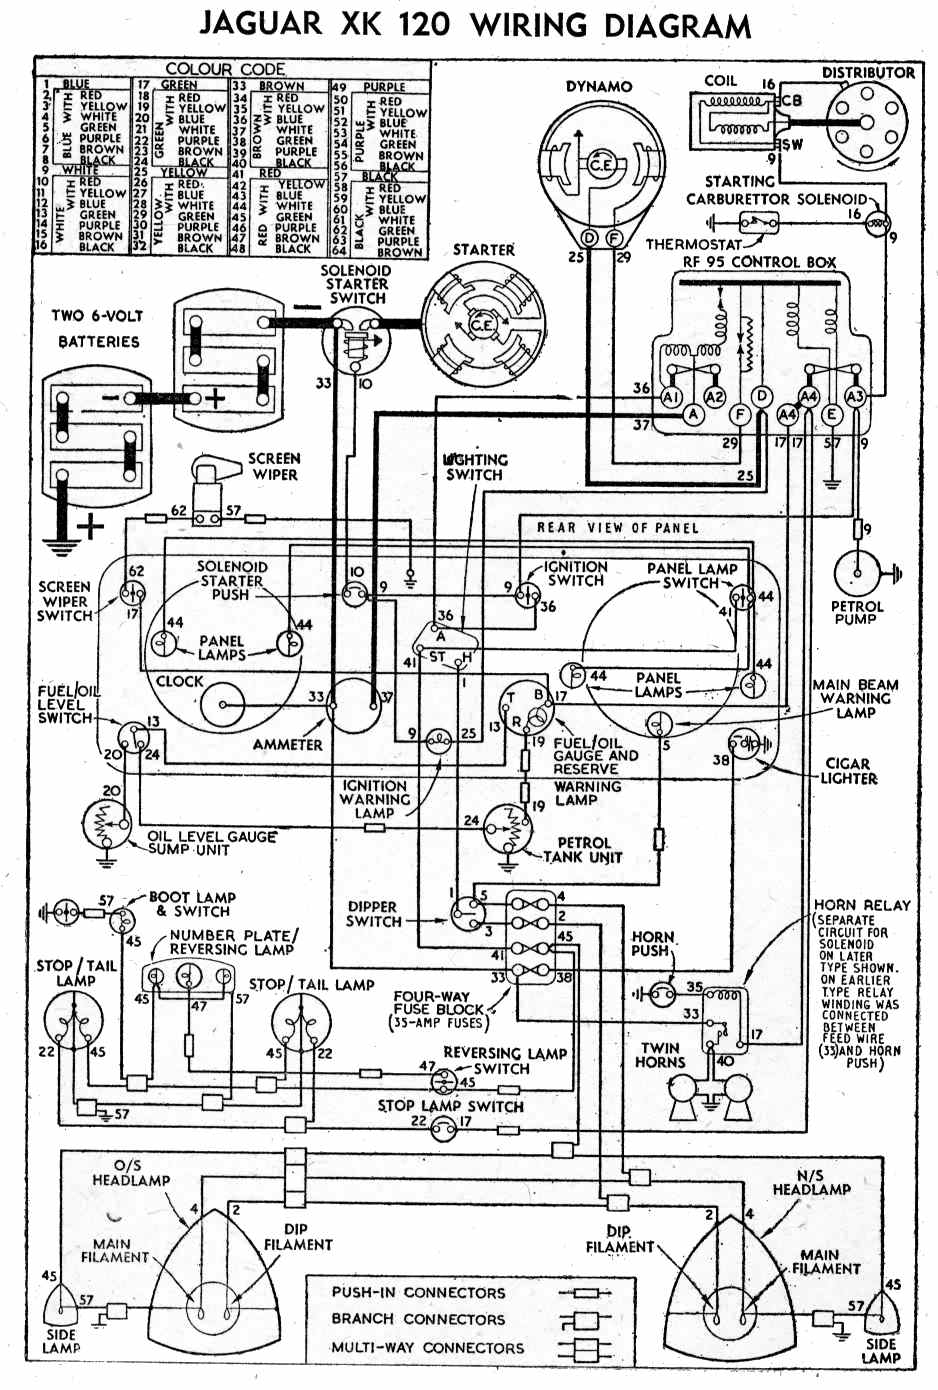 medium resolution of jaguar xk 150 wiring diagram wiring diagram mega jaguar xk 150 wiring diagram jaguar xk 150 wiring diagram